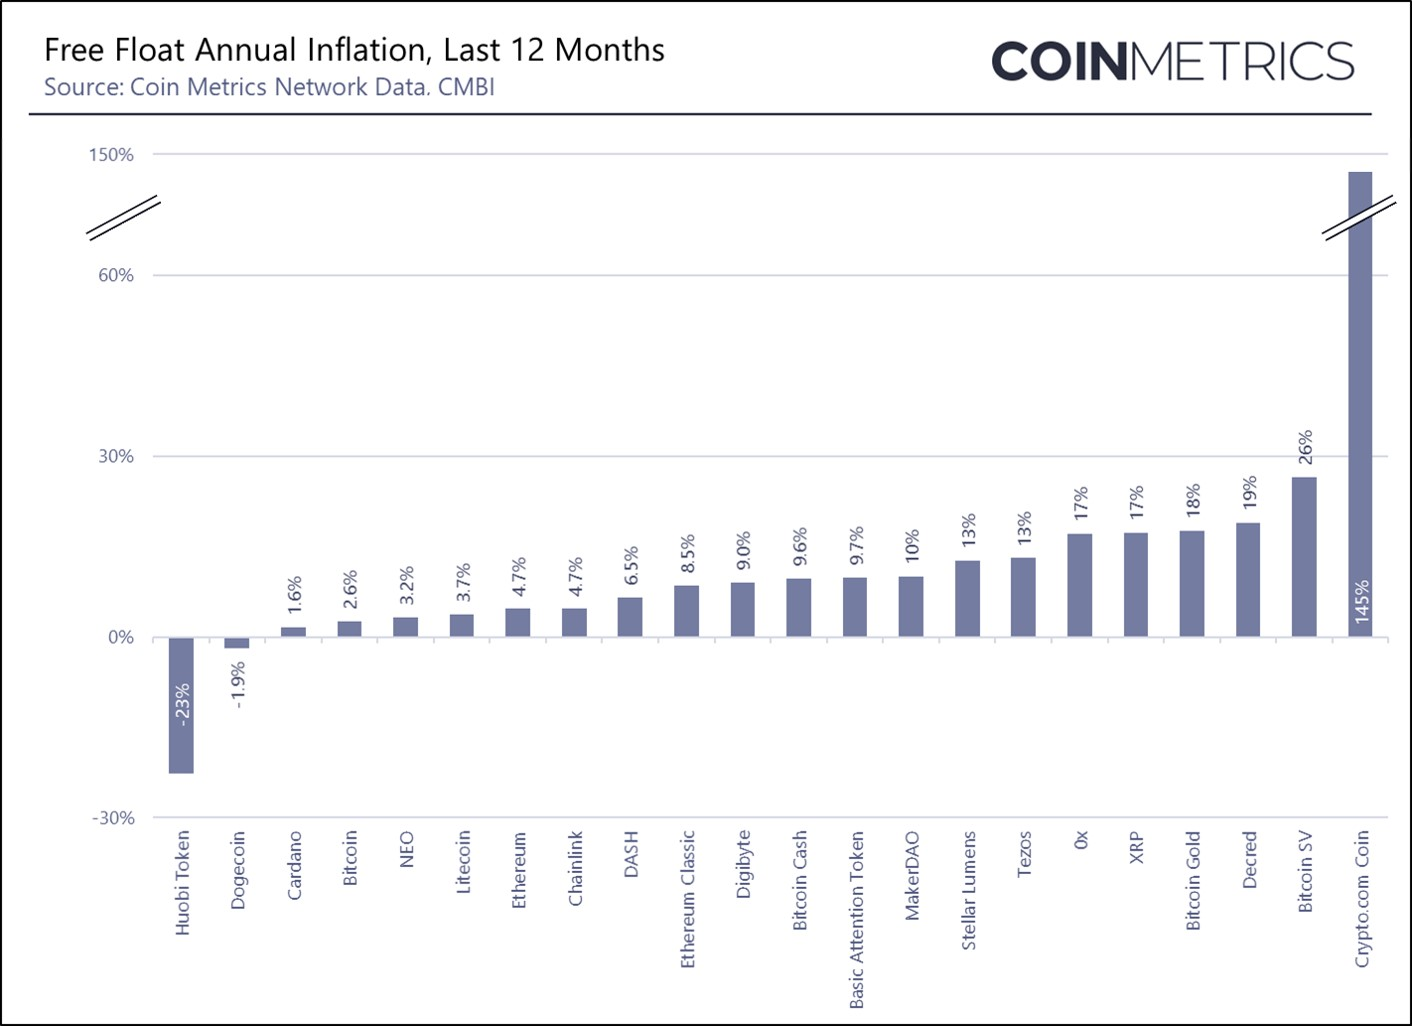 Free Gloat Annual Inflation by Coin Metrics